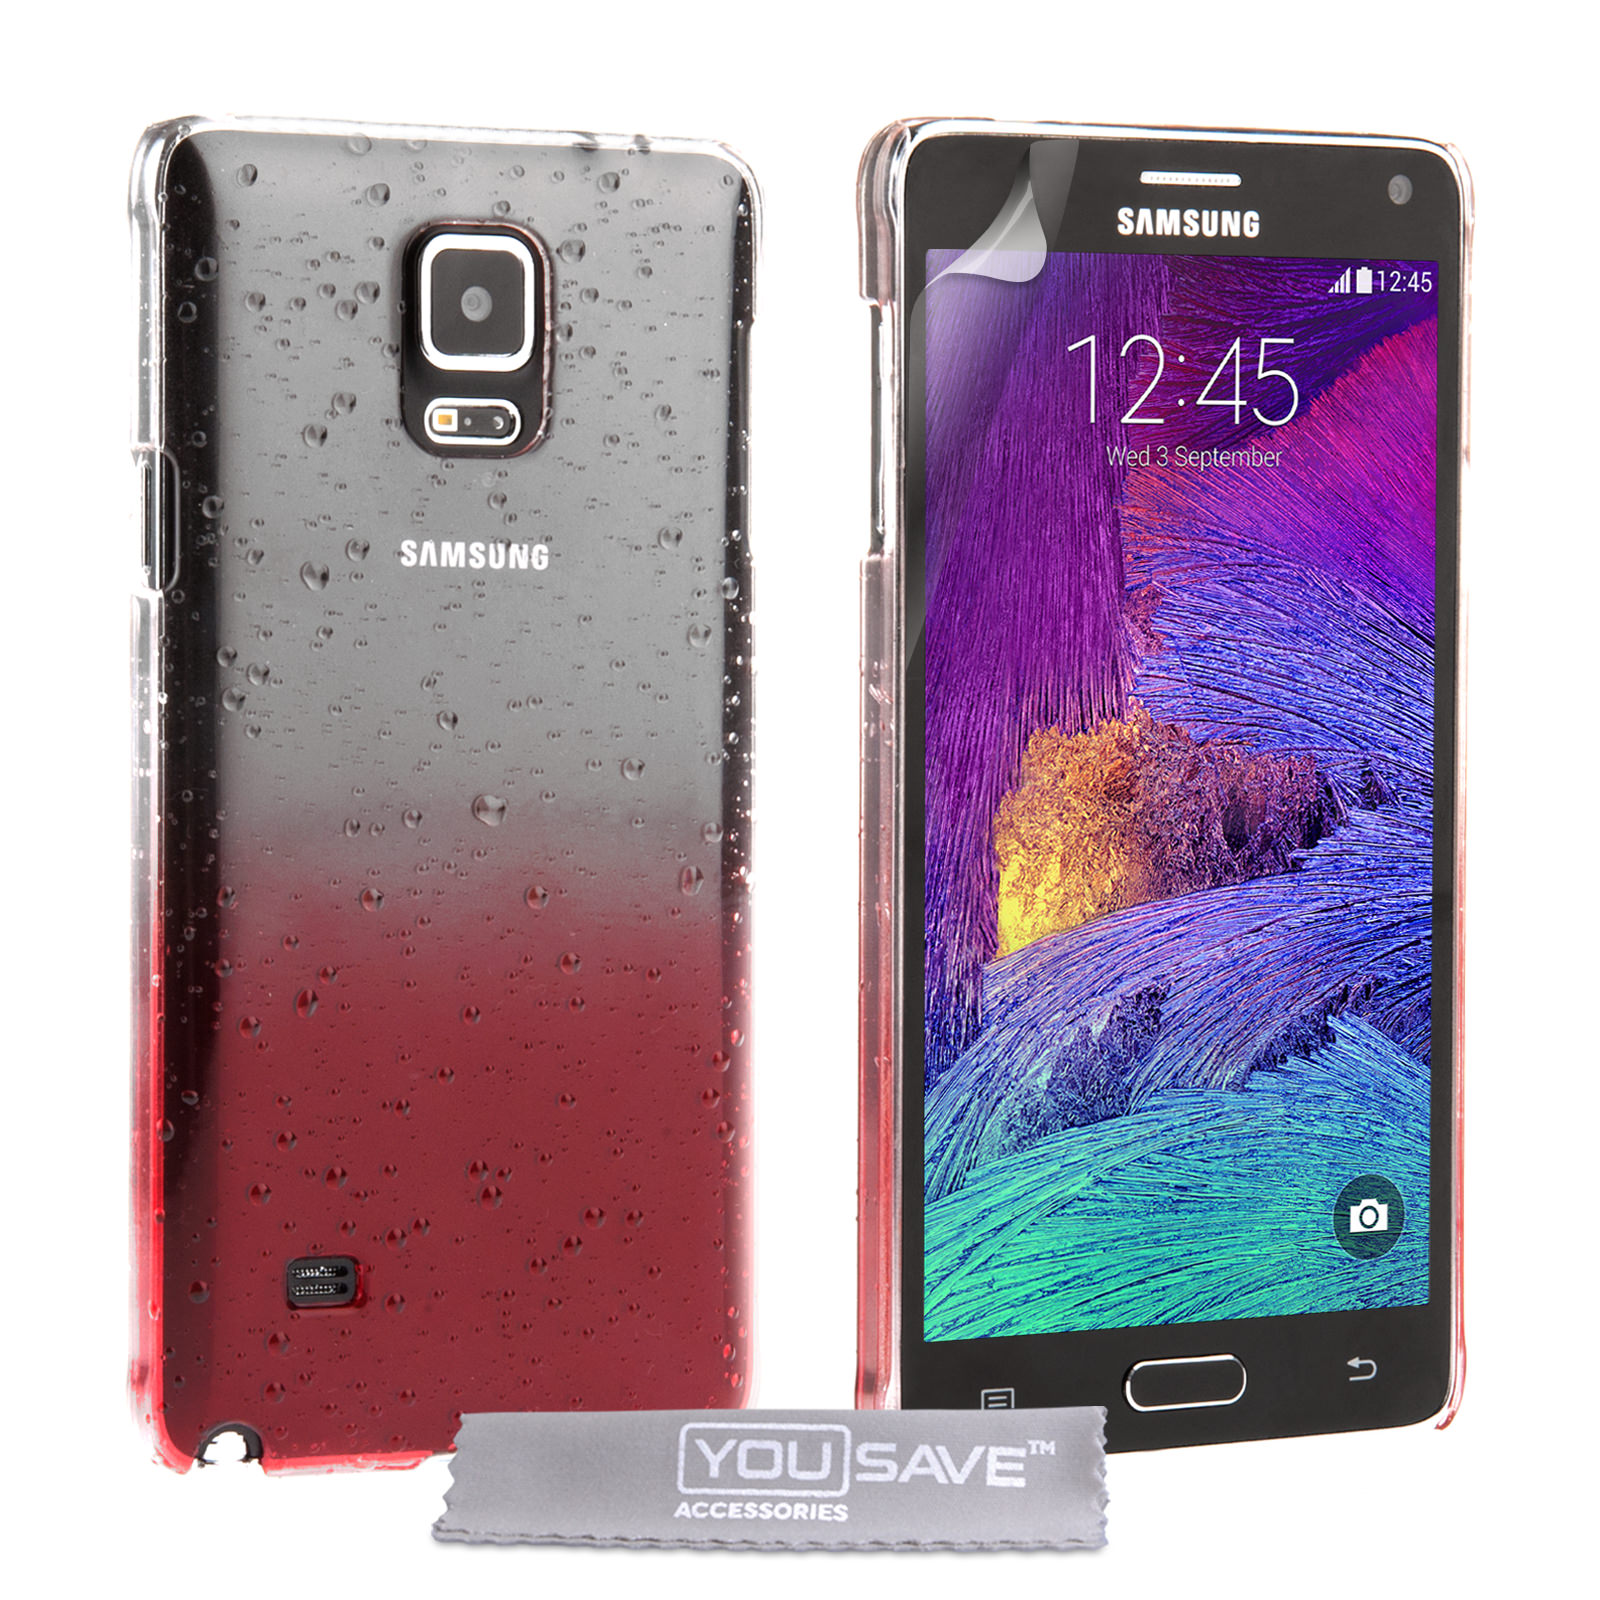 YouSave Samsung Galaxy Note 4 Raindrop Hard Case - Red-Clear